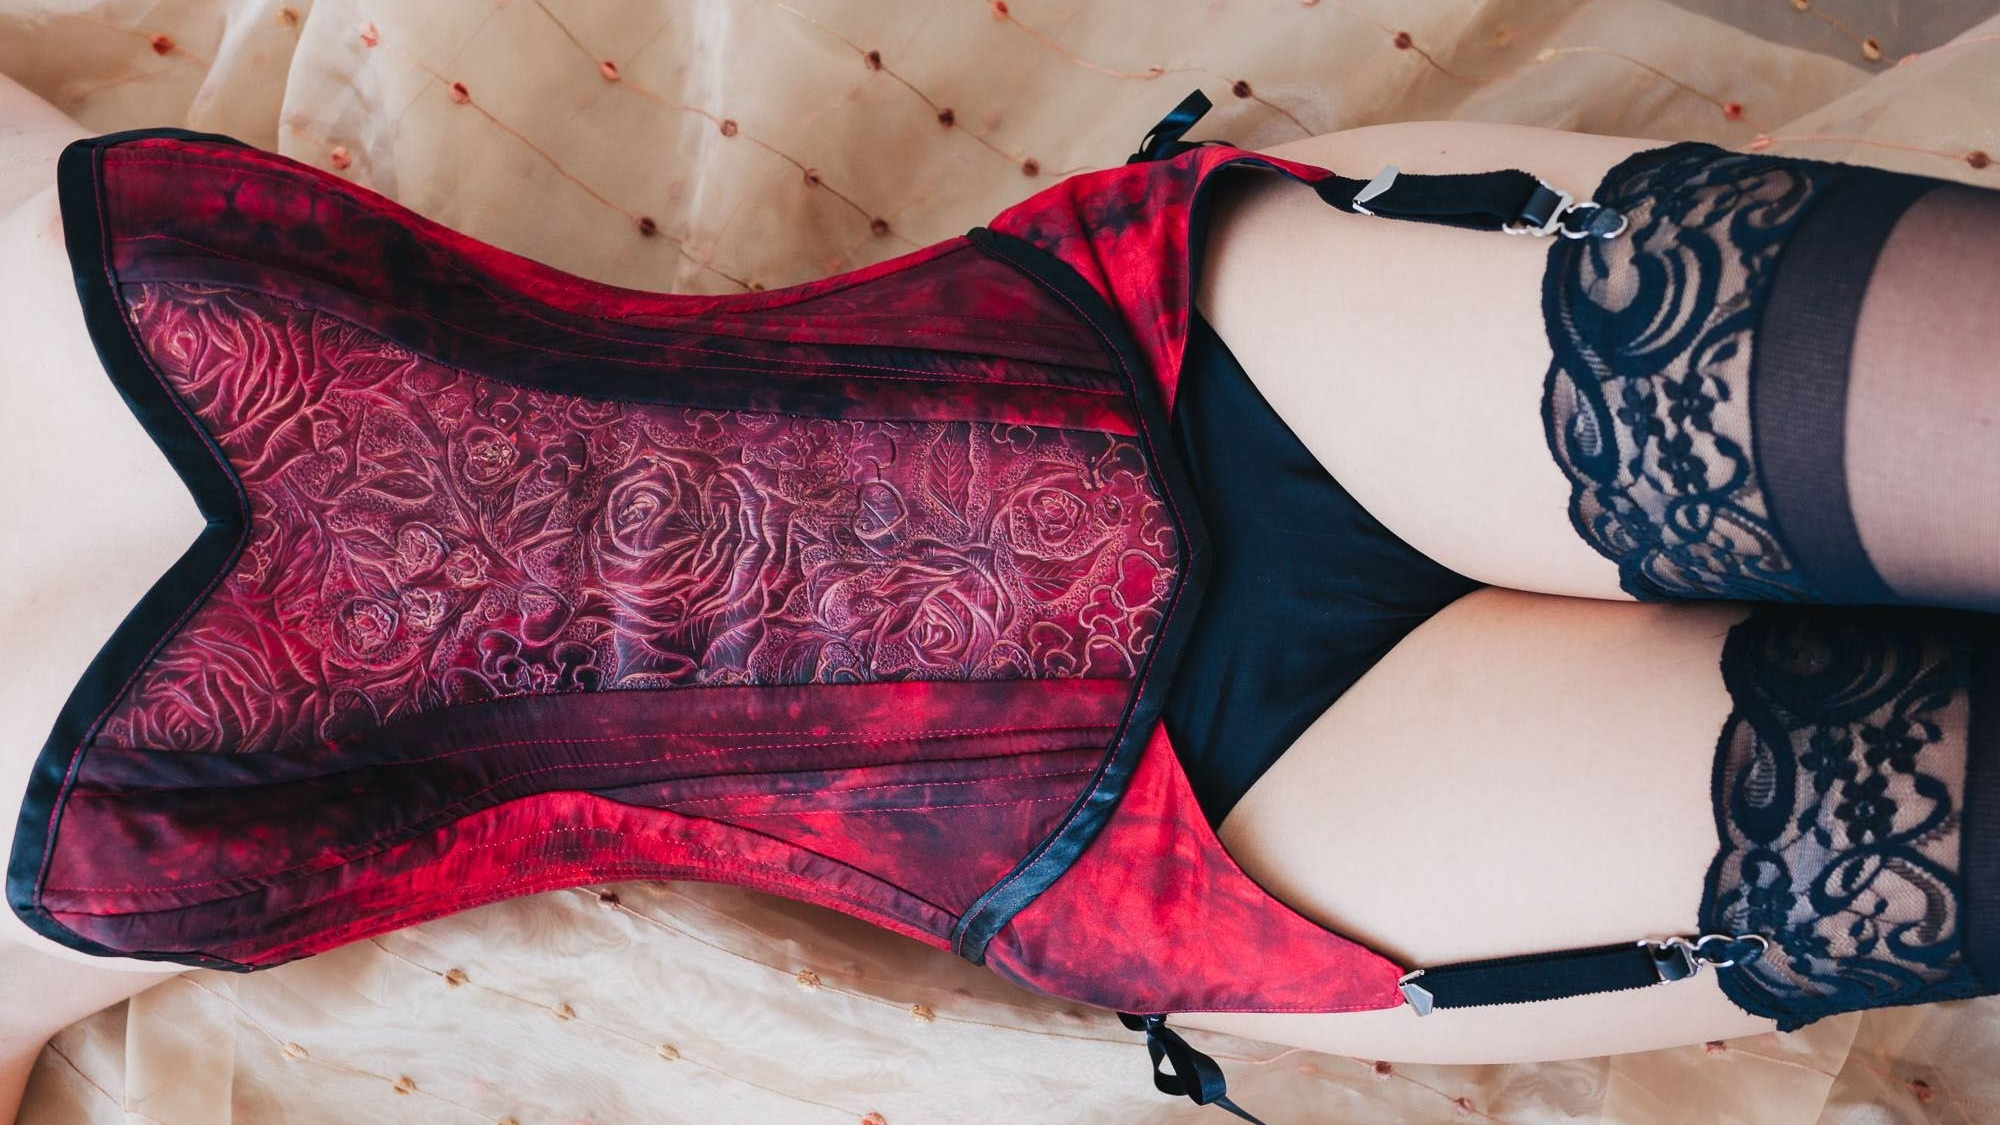 Chiarra Marie - Bespoke Corsetry and lingerie